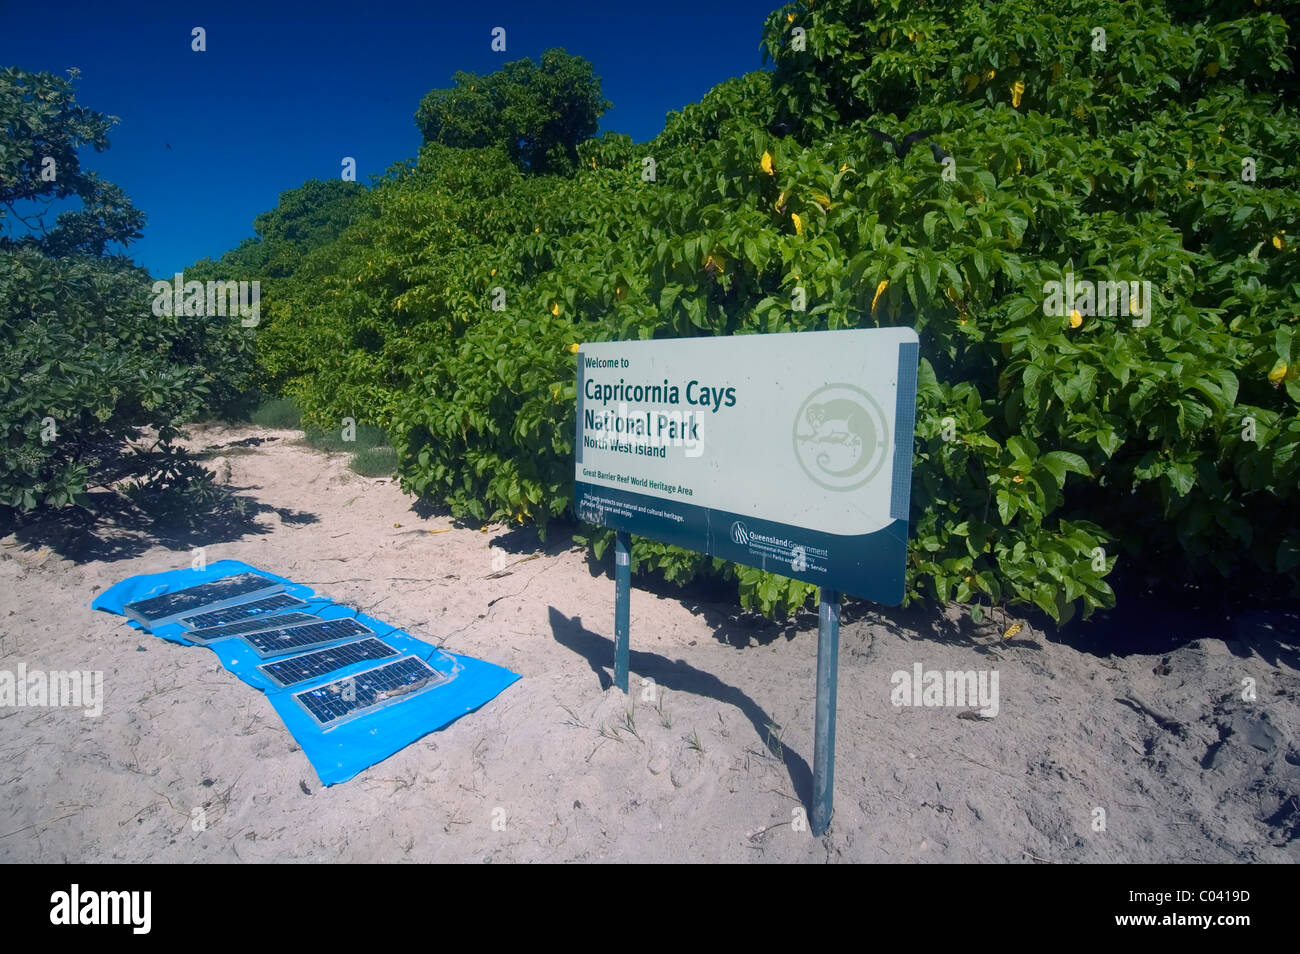 Solar panels charging camping fridges, North West Island, Capricornia Cays National Park, Great Barrier Reef, Australia - Stock Image